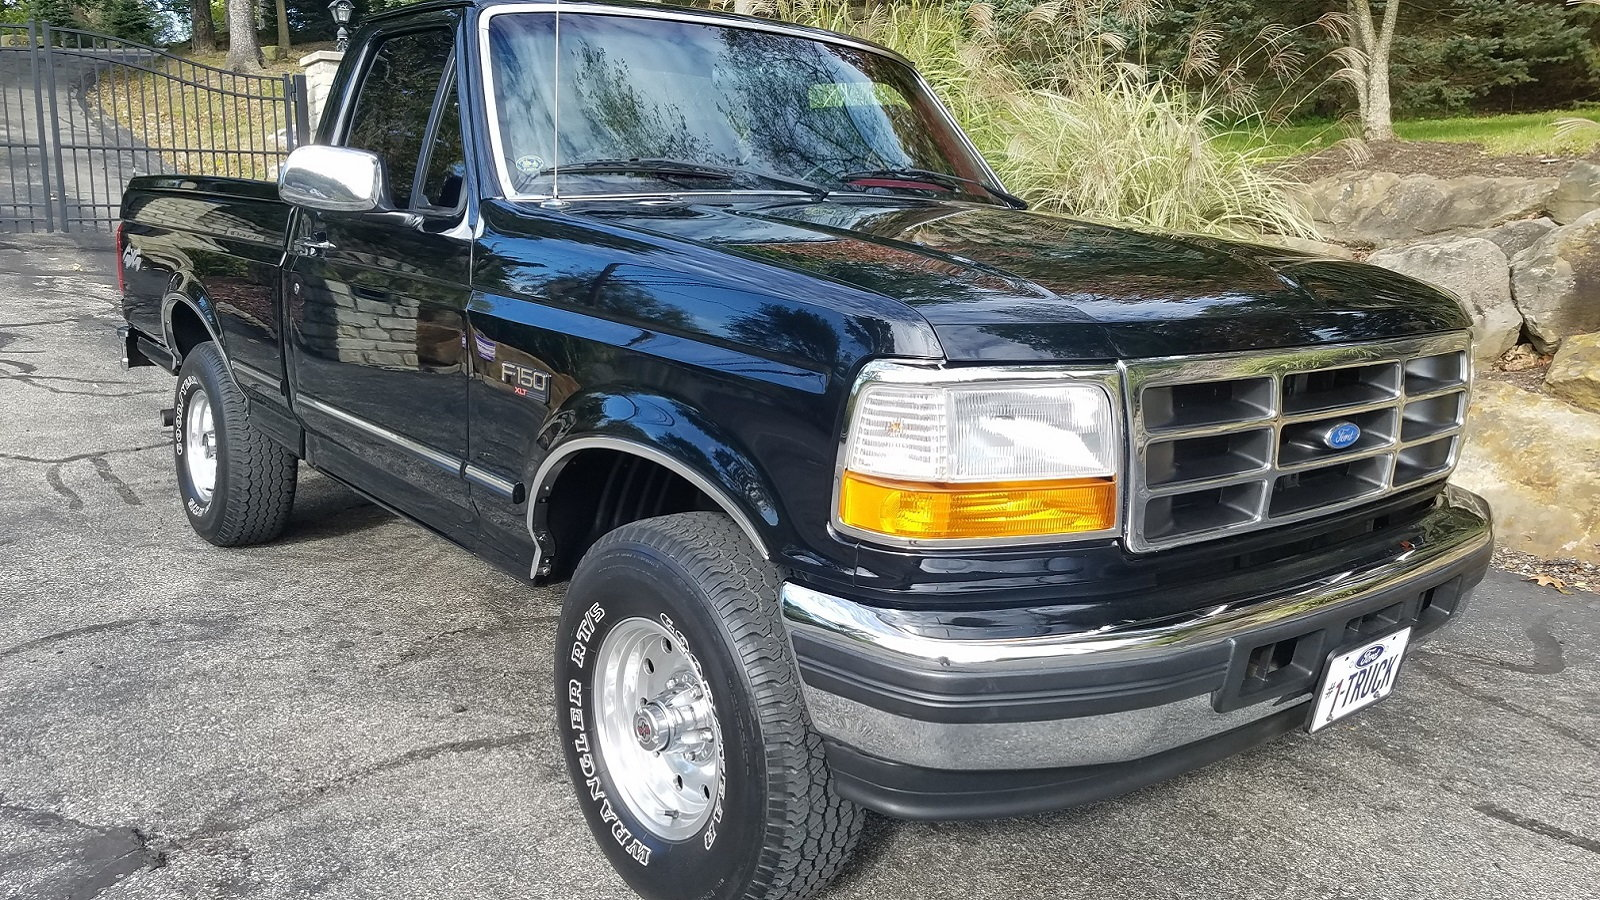 Incredibly Clean '96 Ford F-150 Is the 9th Gen of Our Dreams